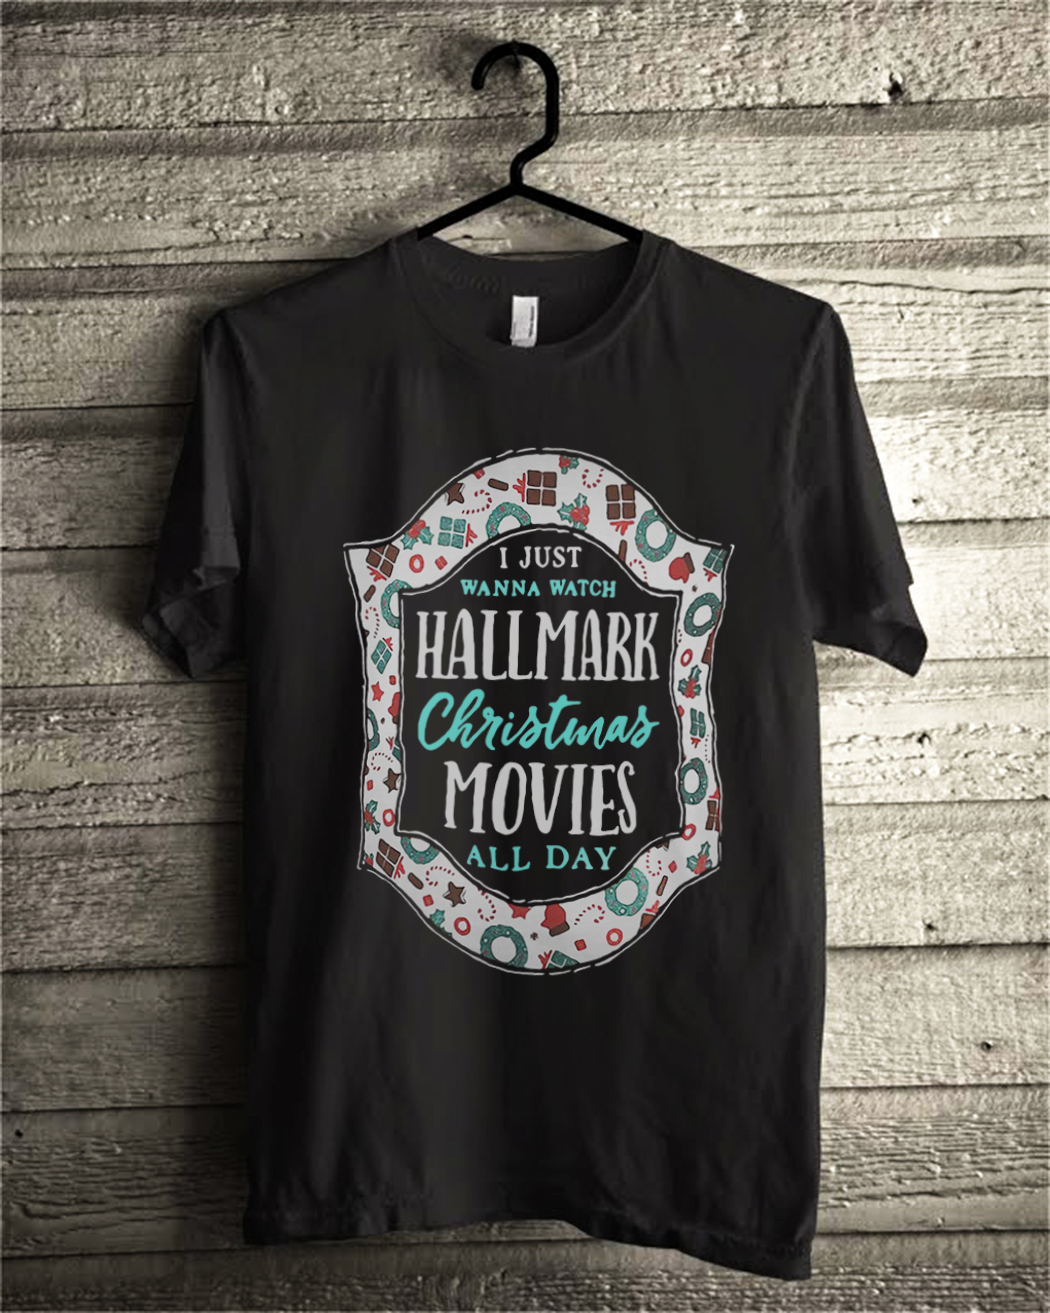 I just want to watch hallmark christmas movies all day shirtI just want to watch hallmark christmas movies all day shirt